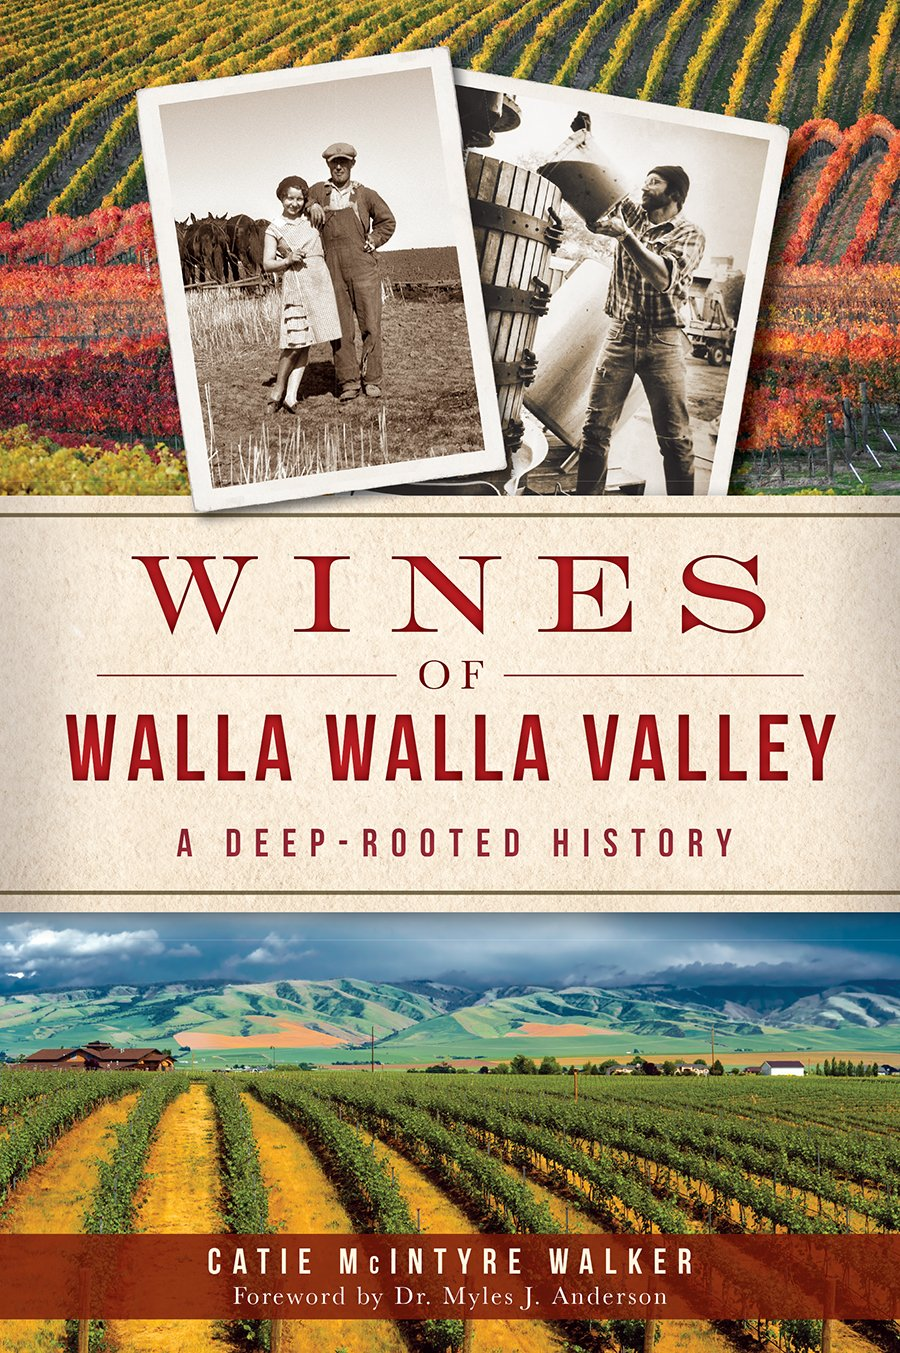 winesofthewwvalley-cover-199x300.png